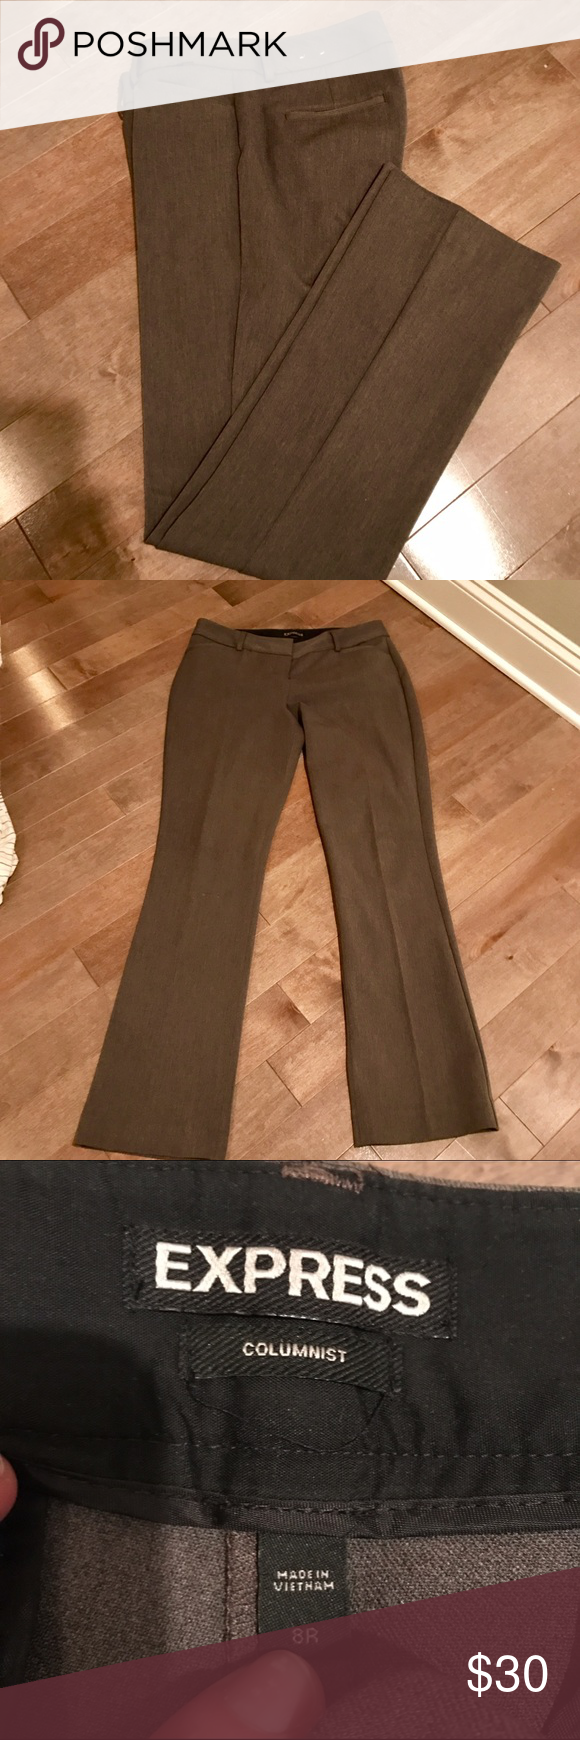 Express columnist pant Excellent condition. Like new. Too small for me. Express Pants Straight Leg